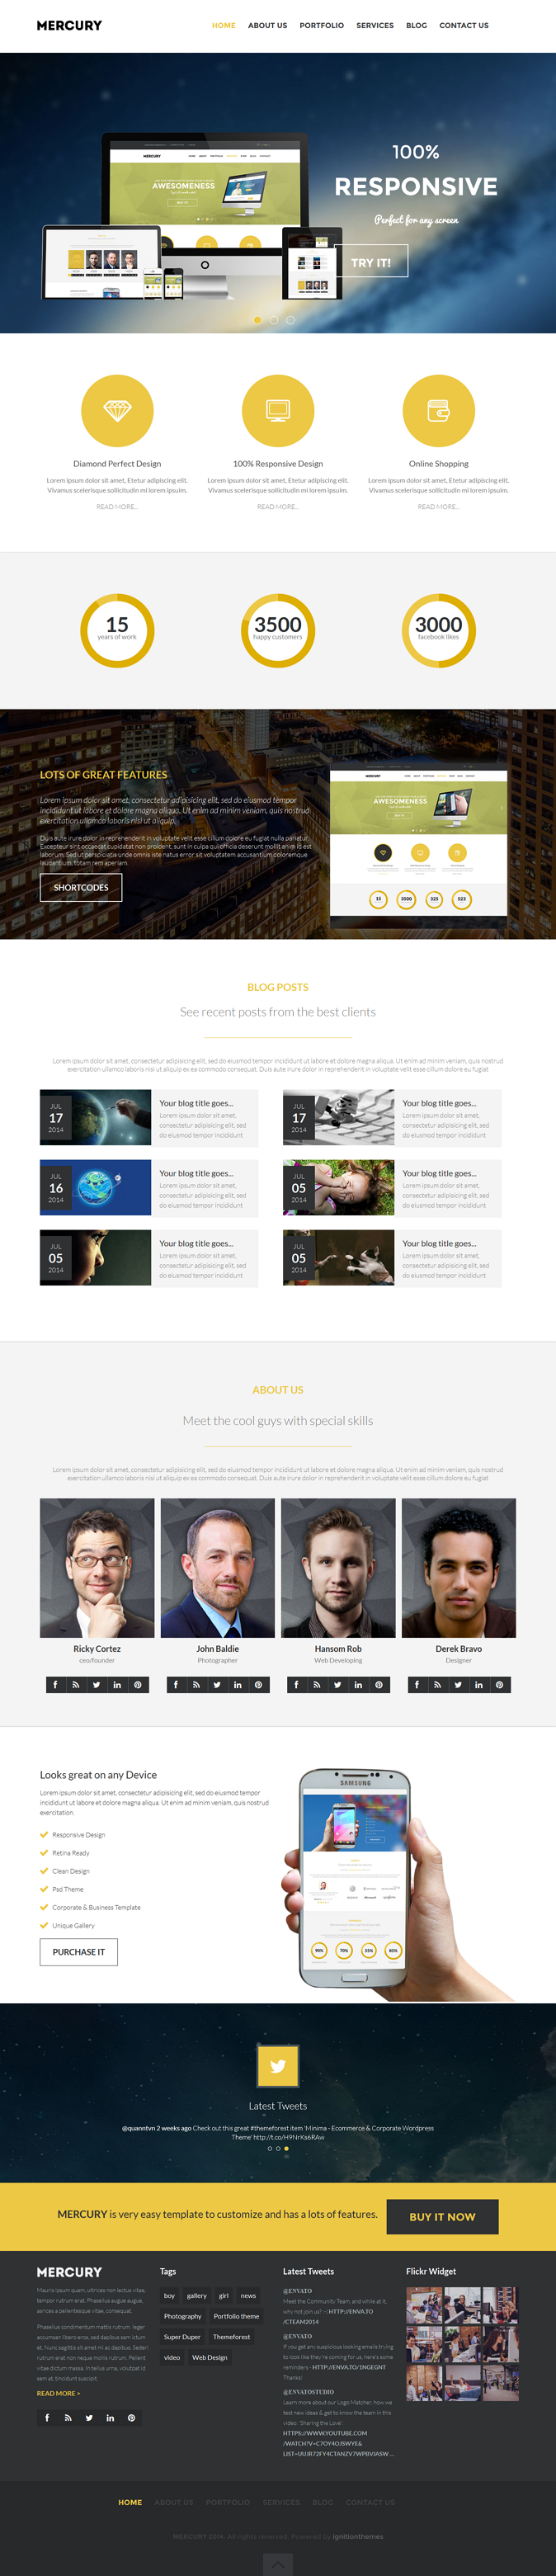 MERCURY is a Multipurpose Premium WordPress template suitable for any type of business. 32 is nu ...